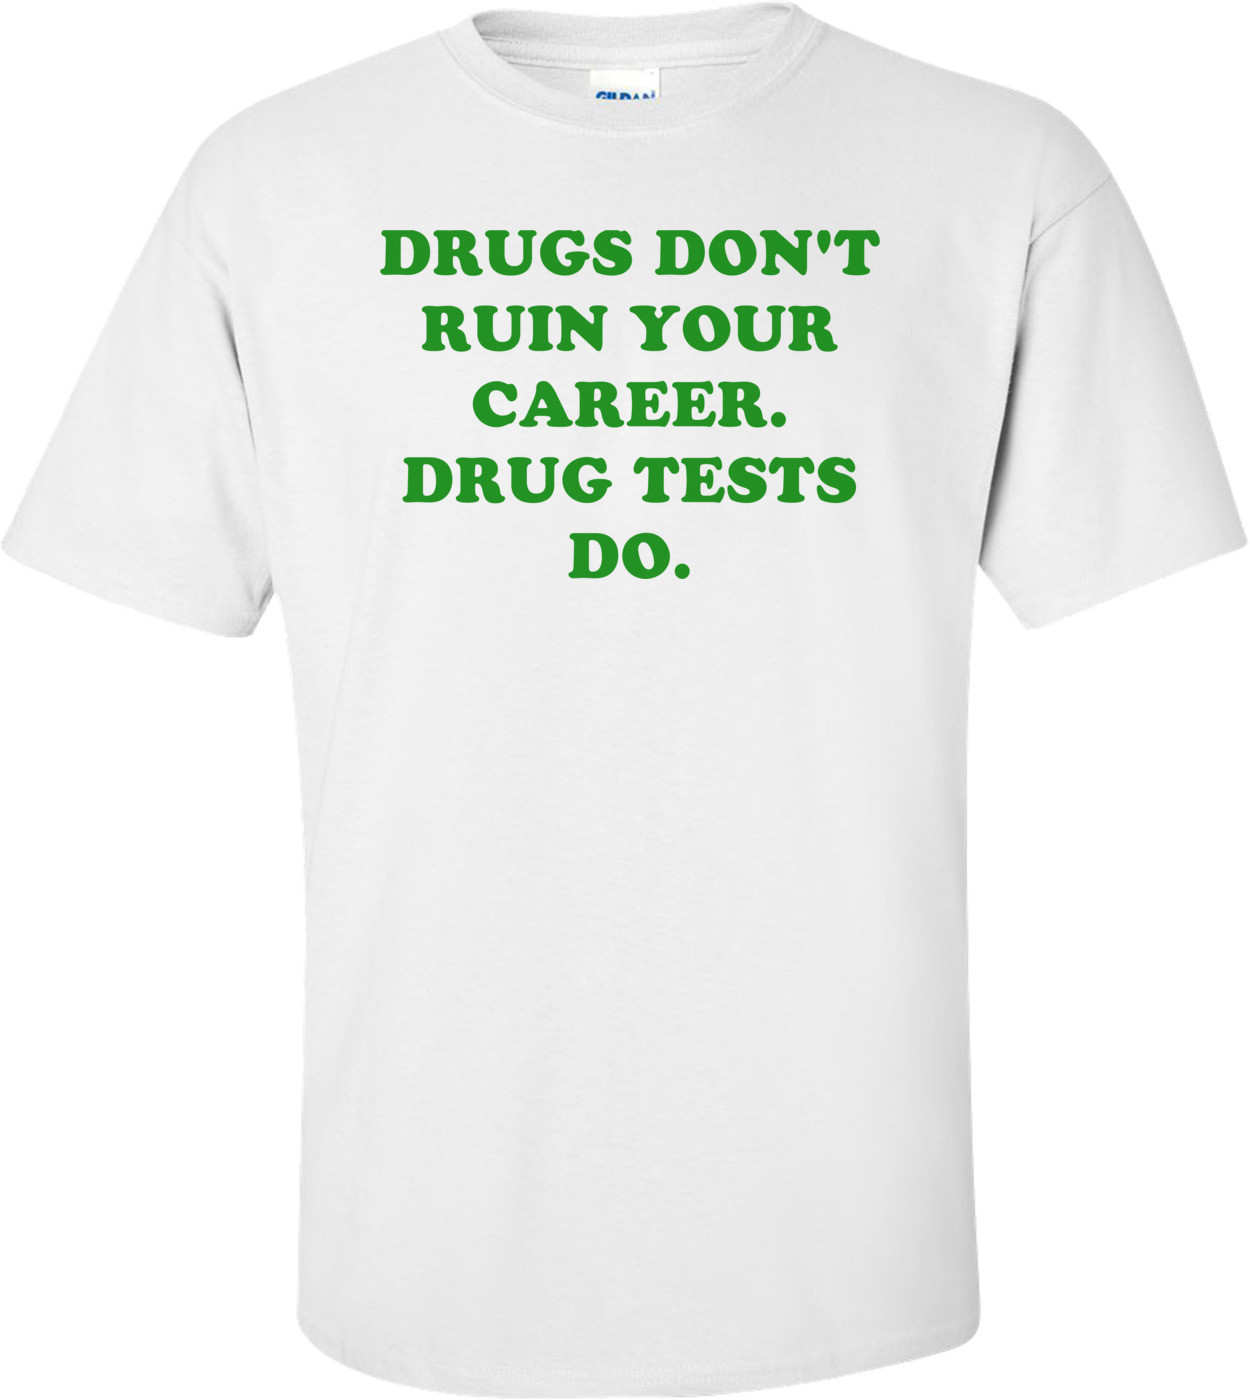 DRUGS DON'T RUIN YOUR CAREER. DRUG TESTS DO. Shirt